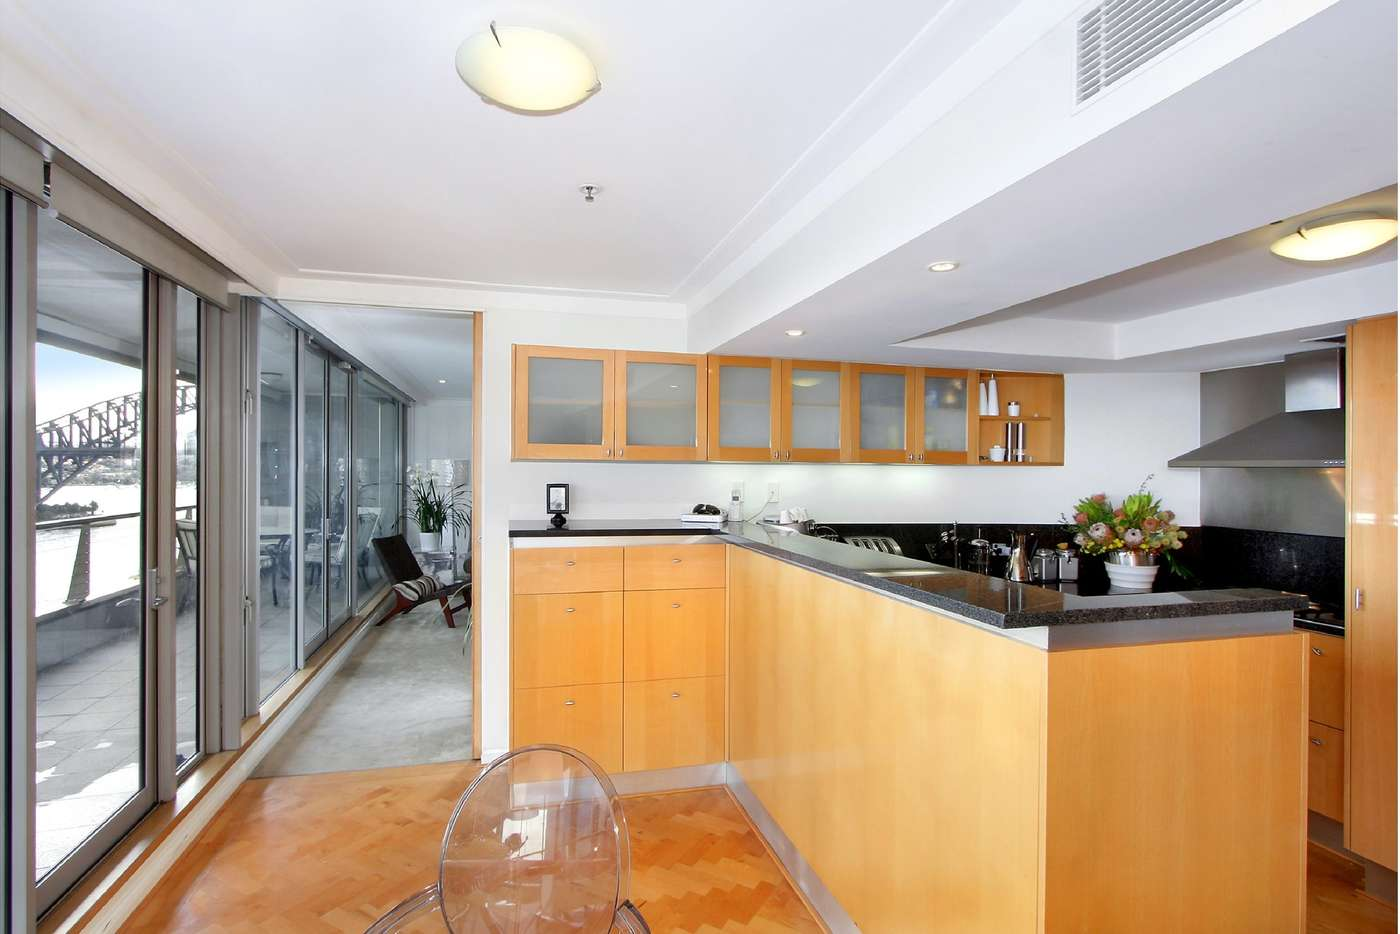 Fifth view of Homely apartment listing, 1402/61 Macquarie Street, Sydney NSW 2000